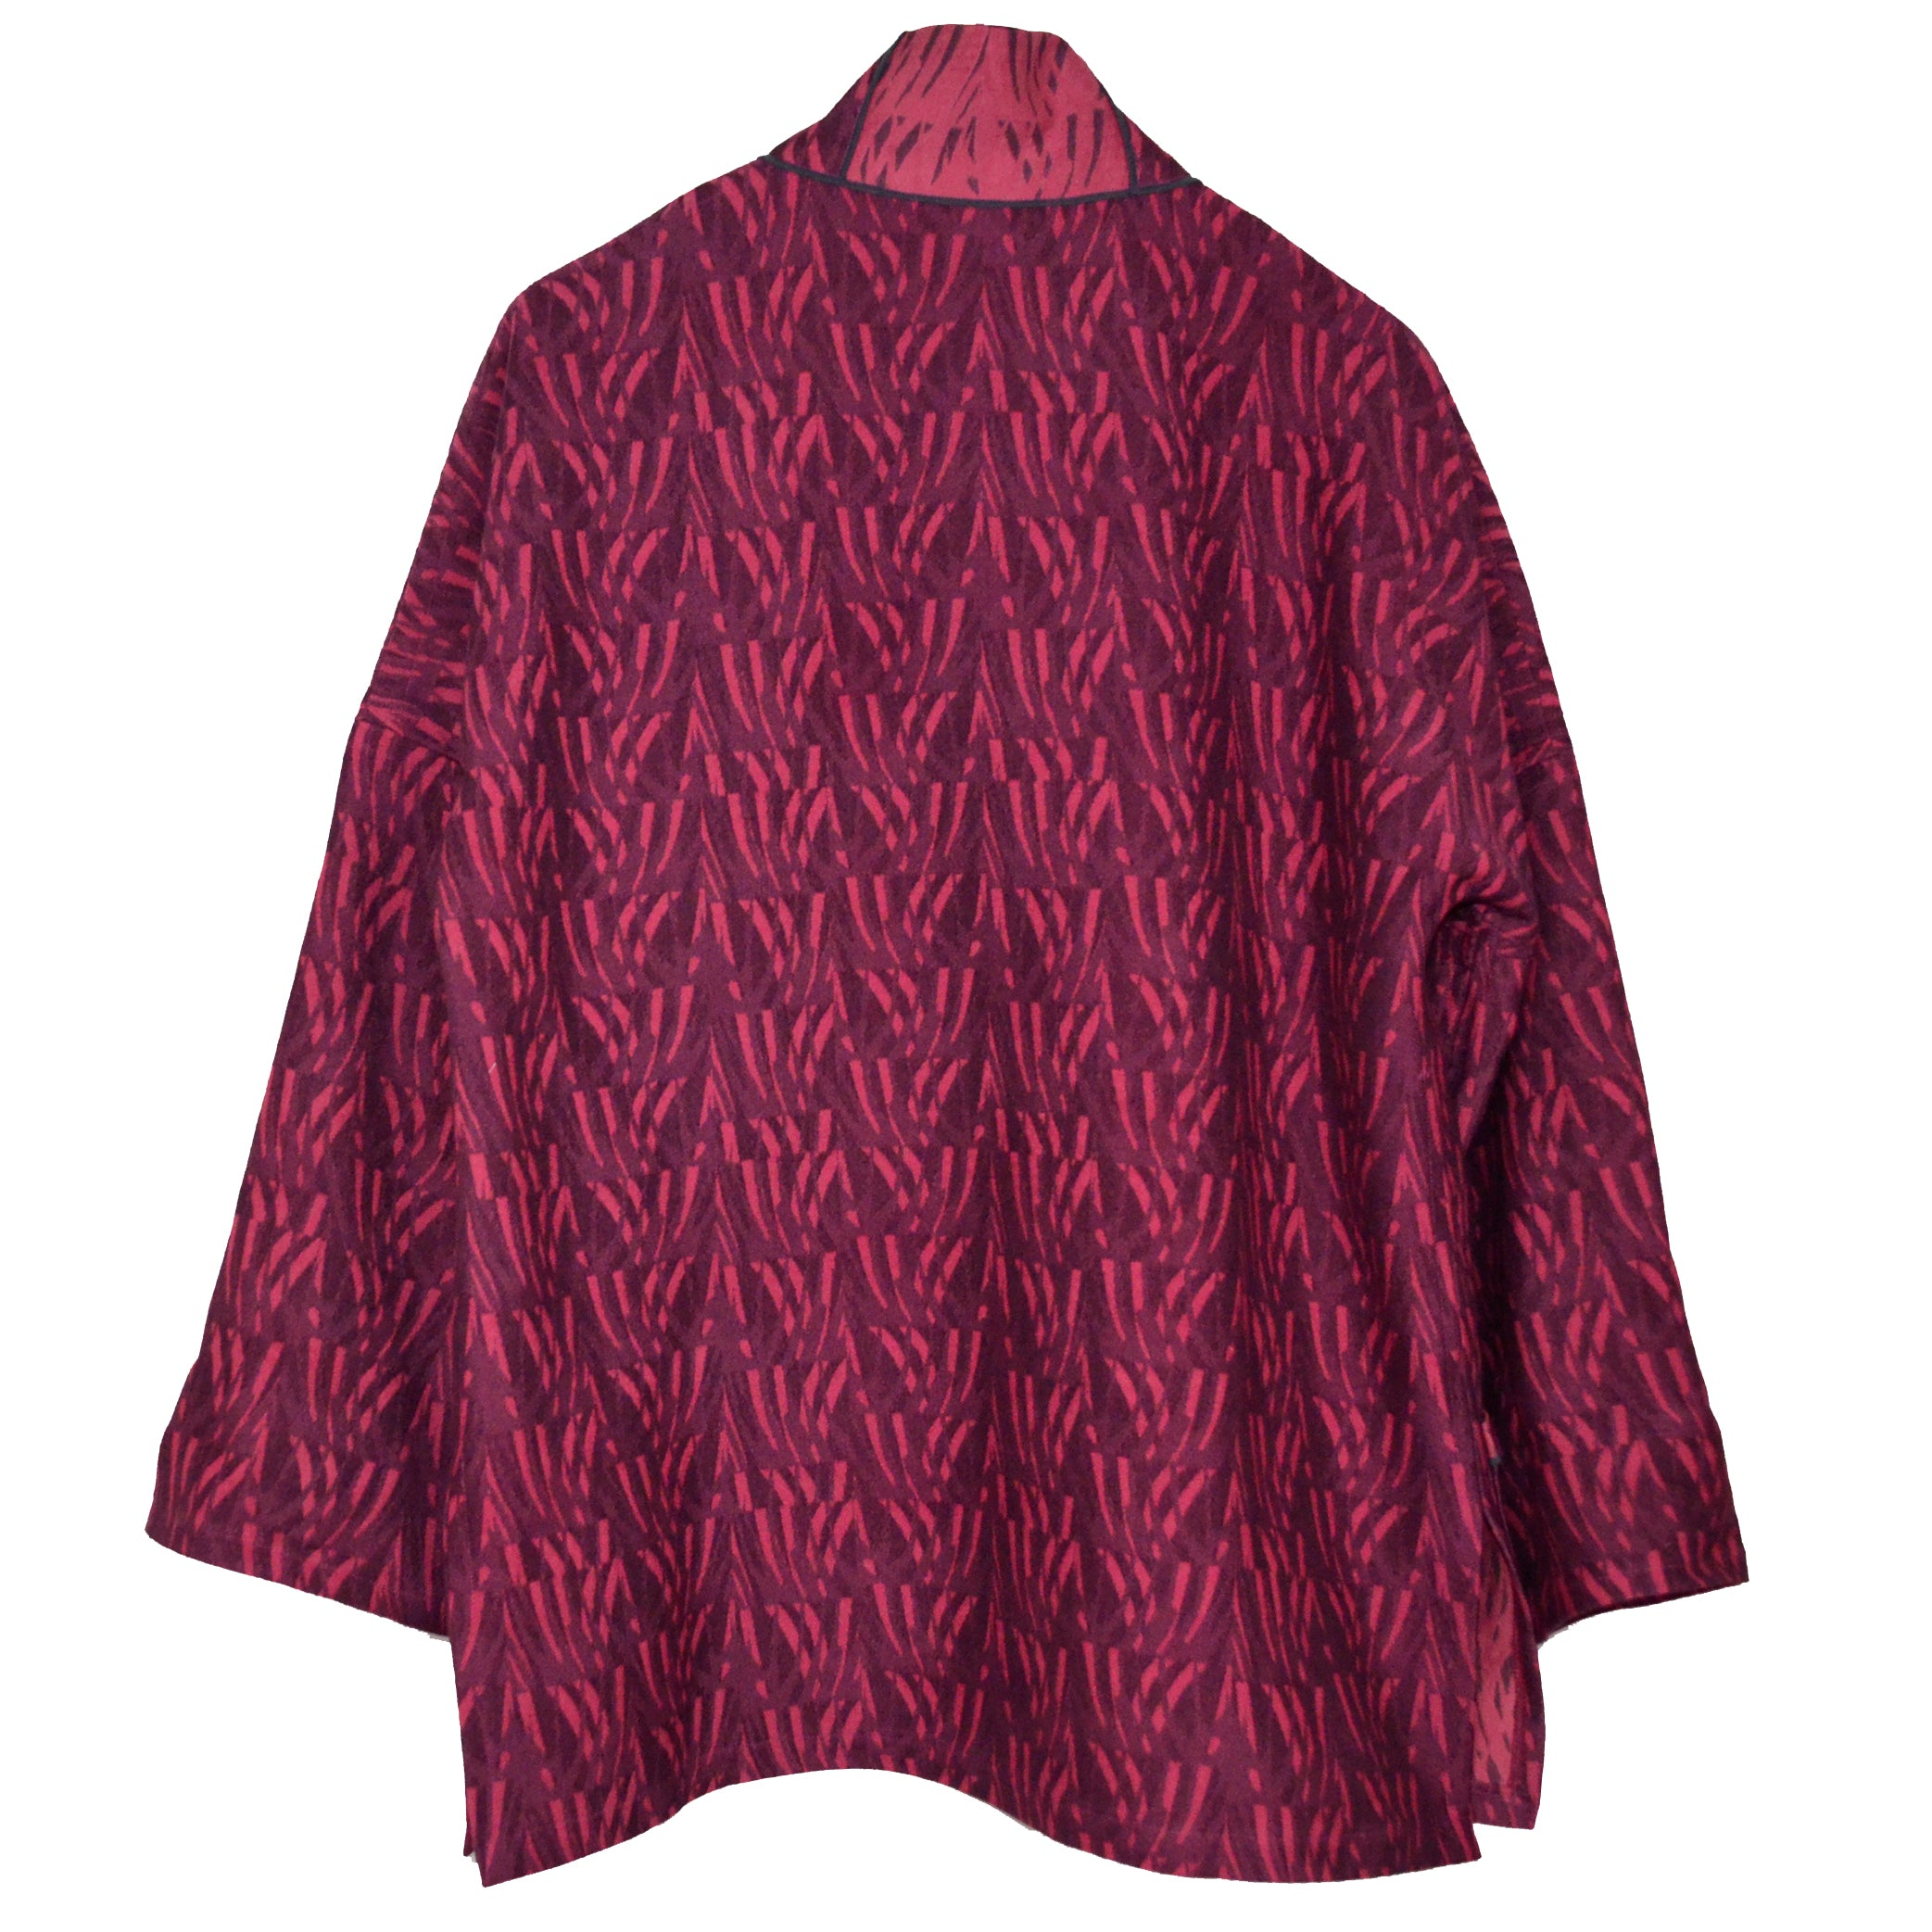 Joyce Wilkerson Jacket, Lotus, Raspberry Elements, M